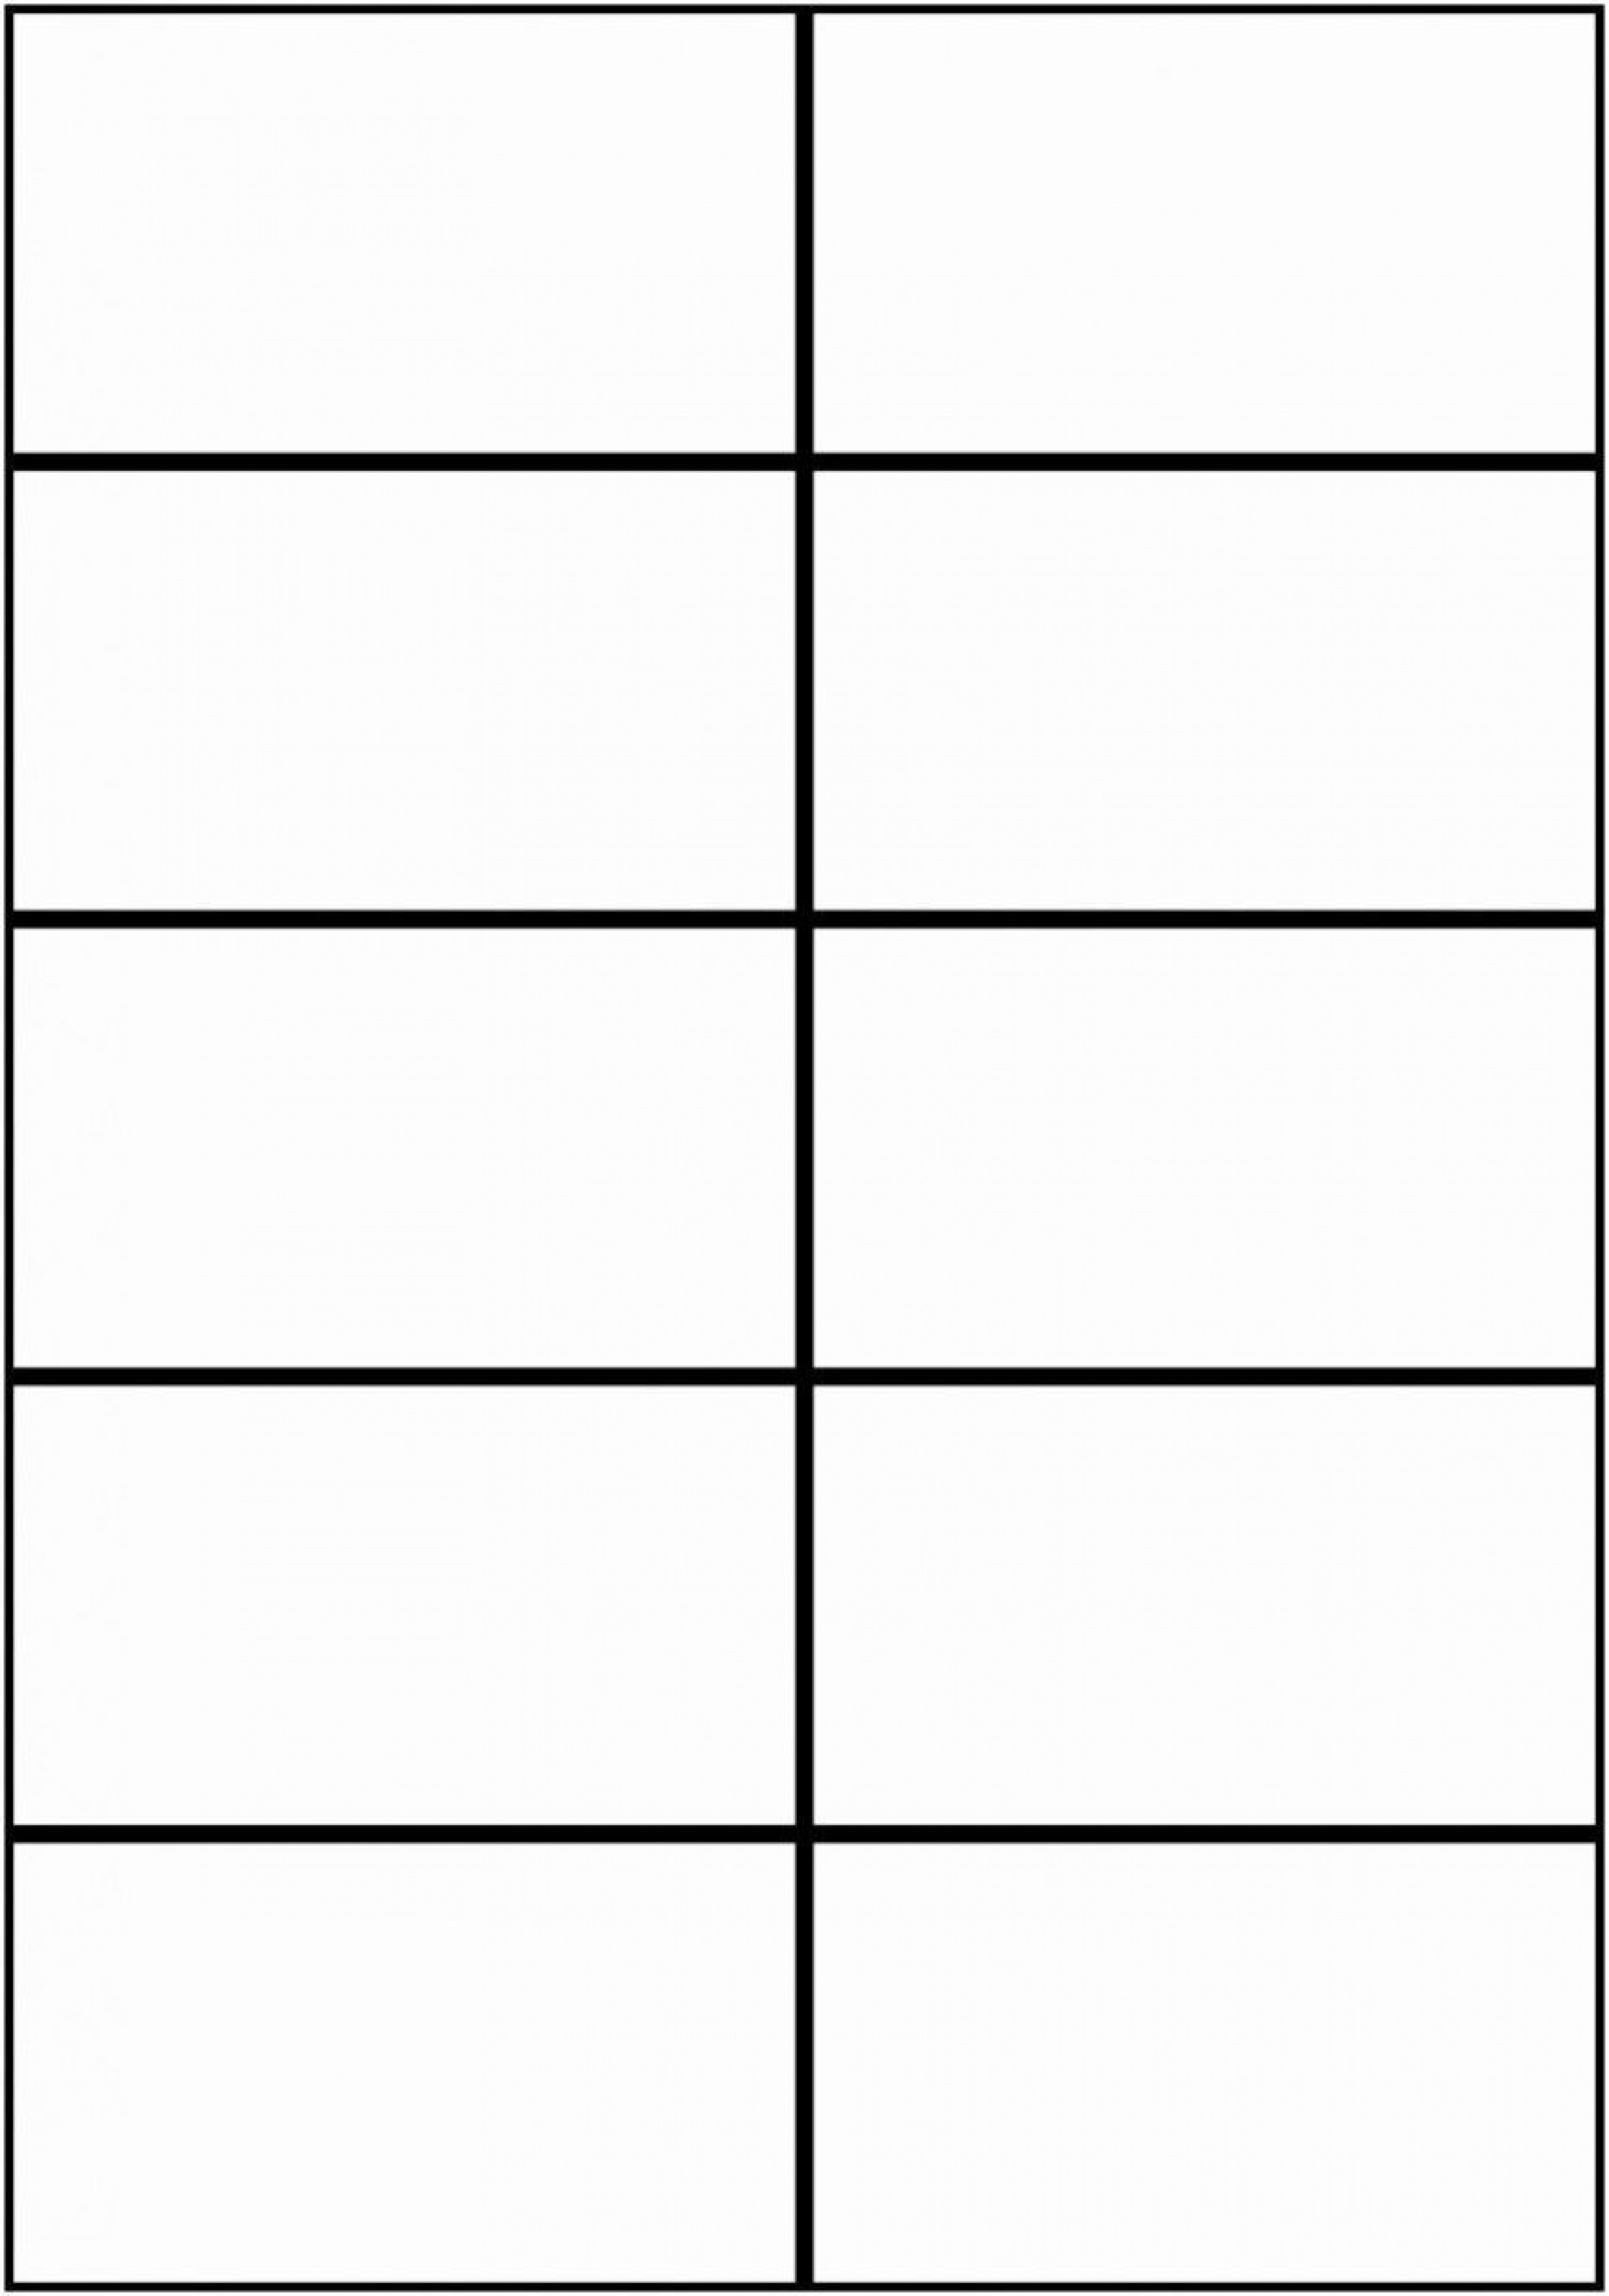 004 Simple Free Printable Busines Template Picture  Templates Card For Google Doc Budget Microsoft Word1920